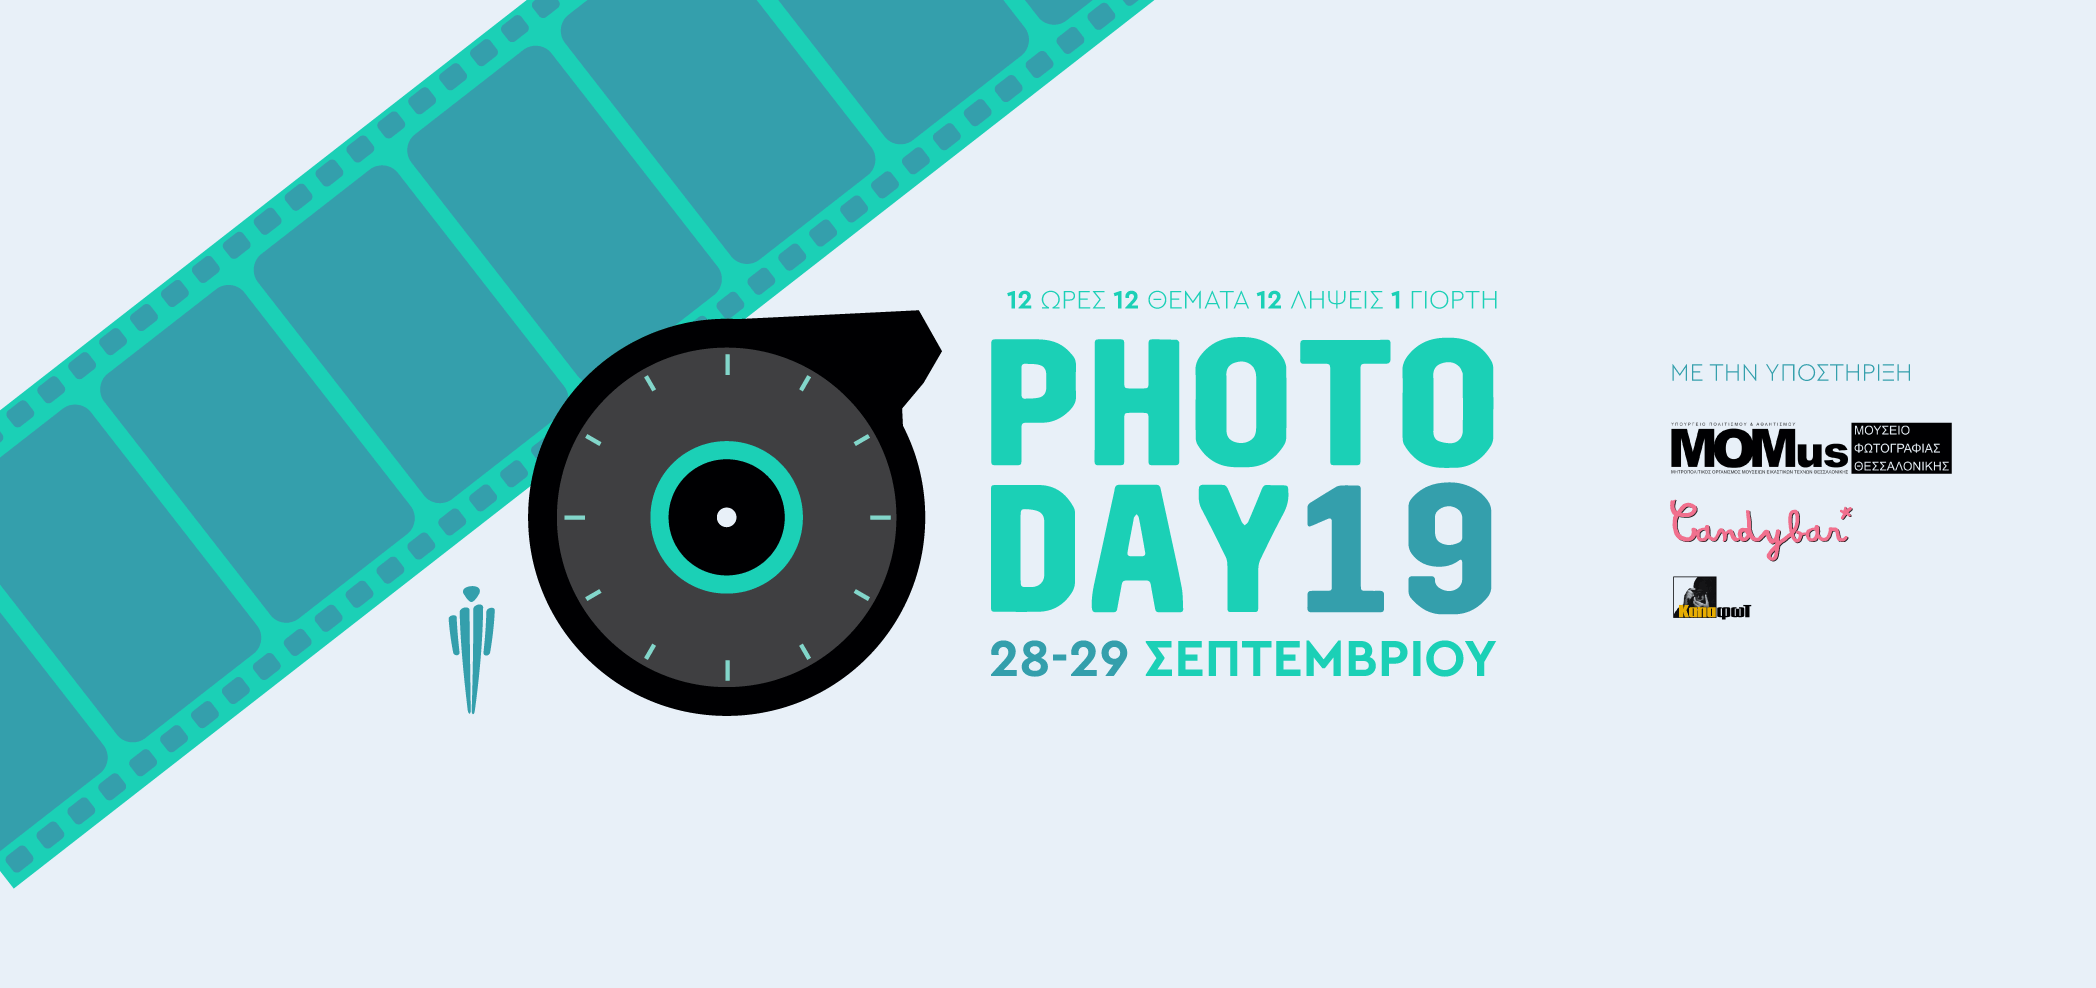 Photoday Stereosis